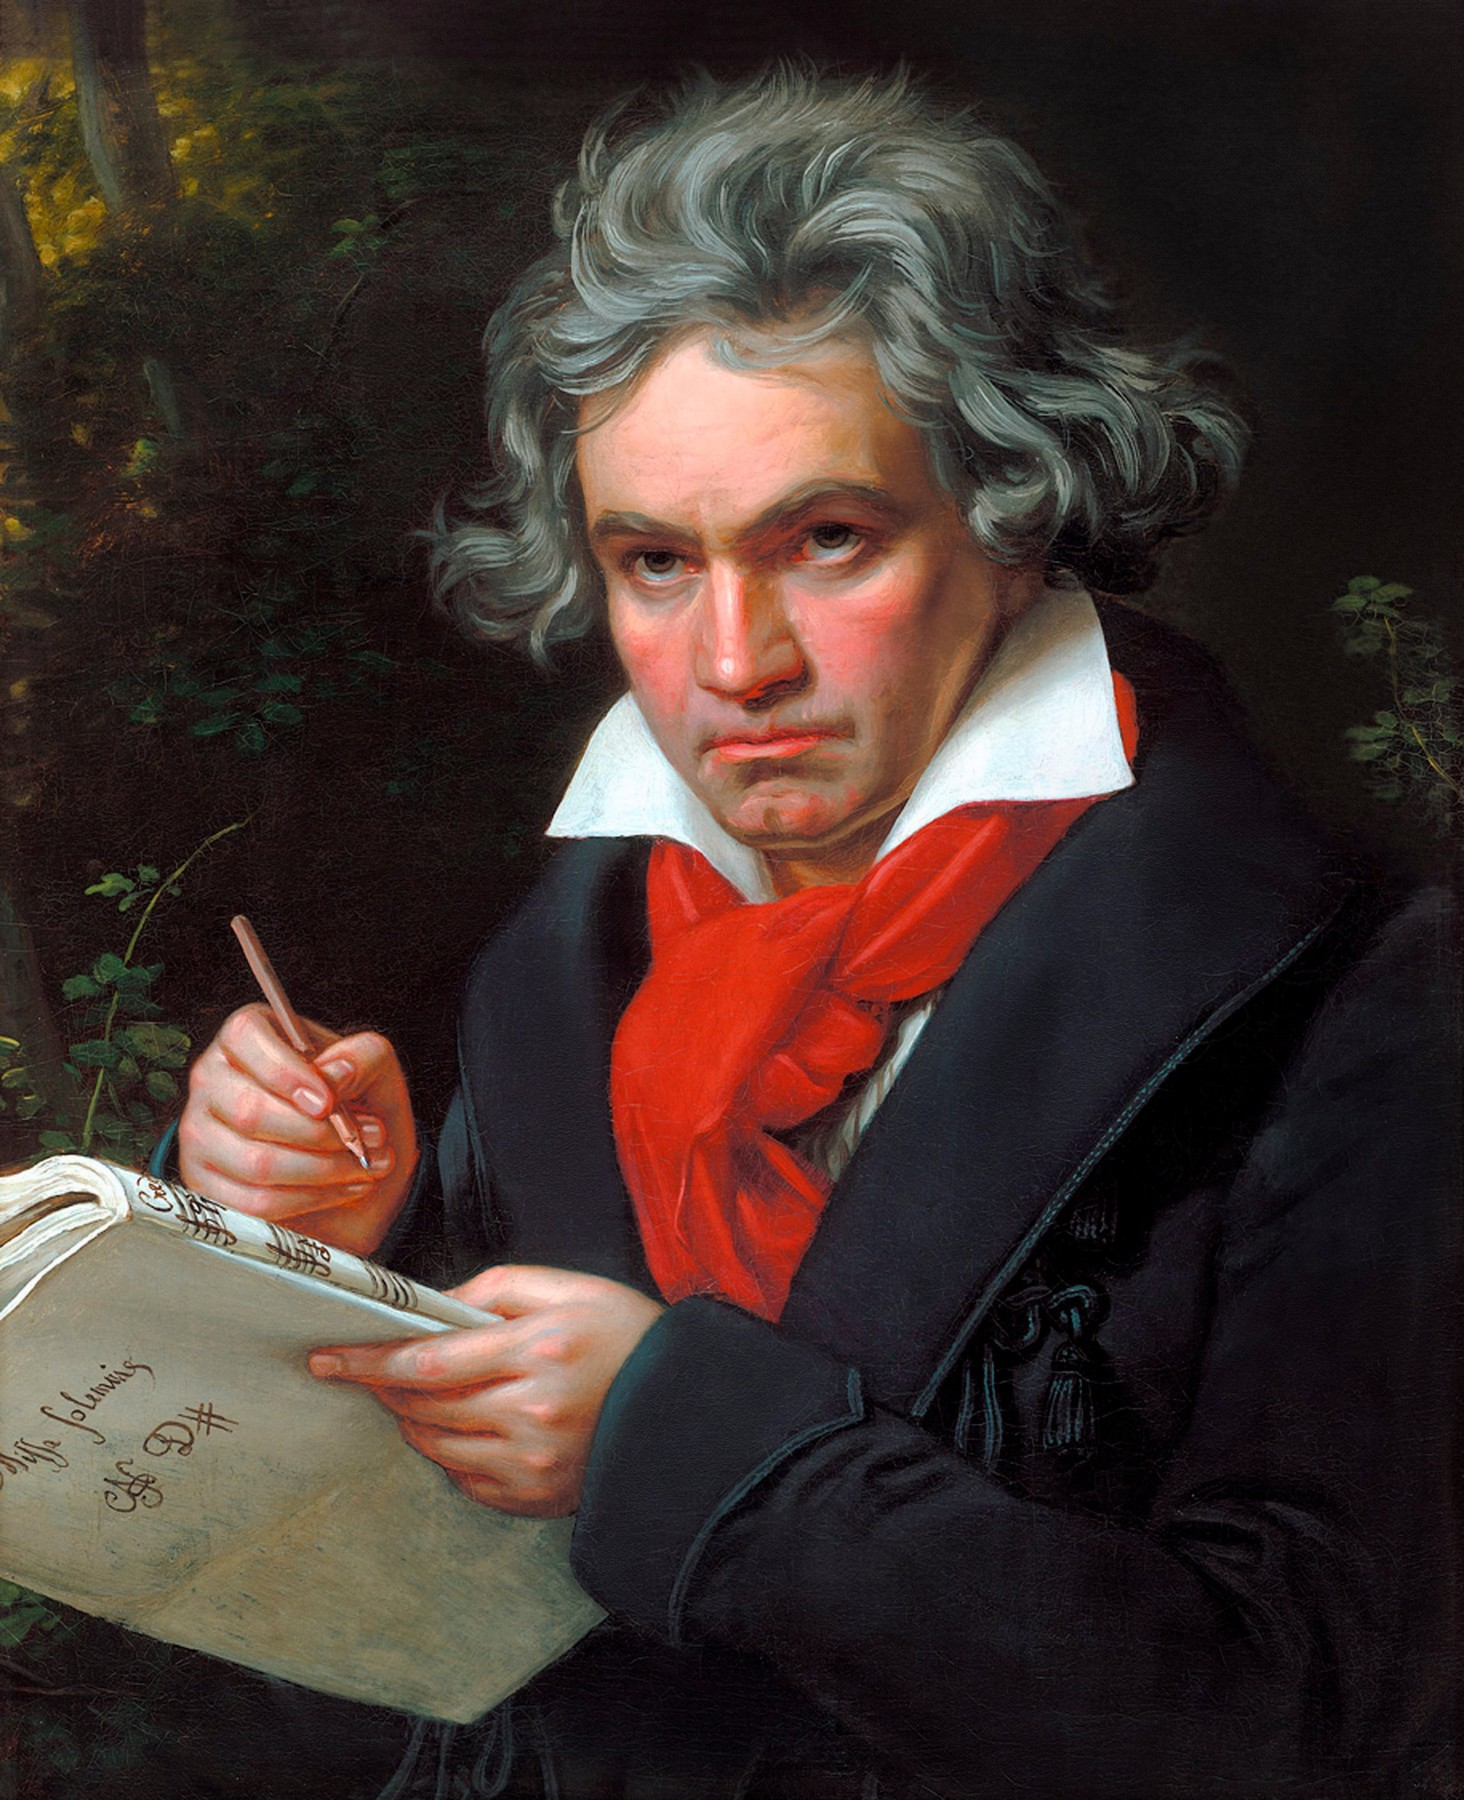 The German composer, Ludwig van Beethoven (1770-1827). Portrait by Joseph Karl Stieler, oil on canvas, 1820. Image digitally restored and retouched, Image: 294789079, License: Rights-managed, Restrictions: , Model Release: no, Credit line: Ian Dagnall / Alamy / Alamy / Profimedia